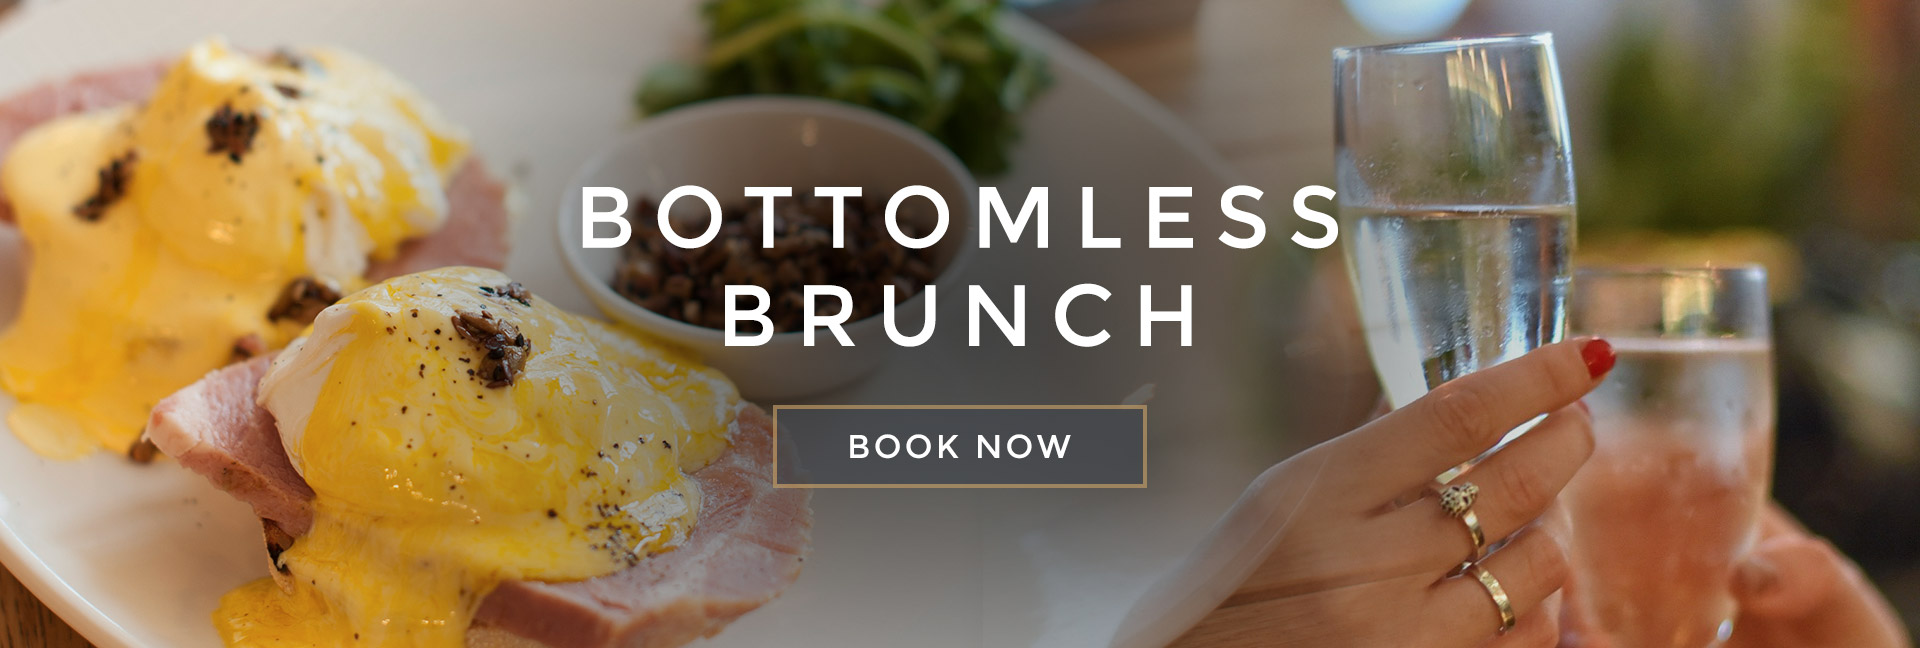 Bottomless Brunch at All Bar One Butlers Wharf - Book now